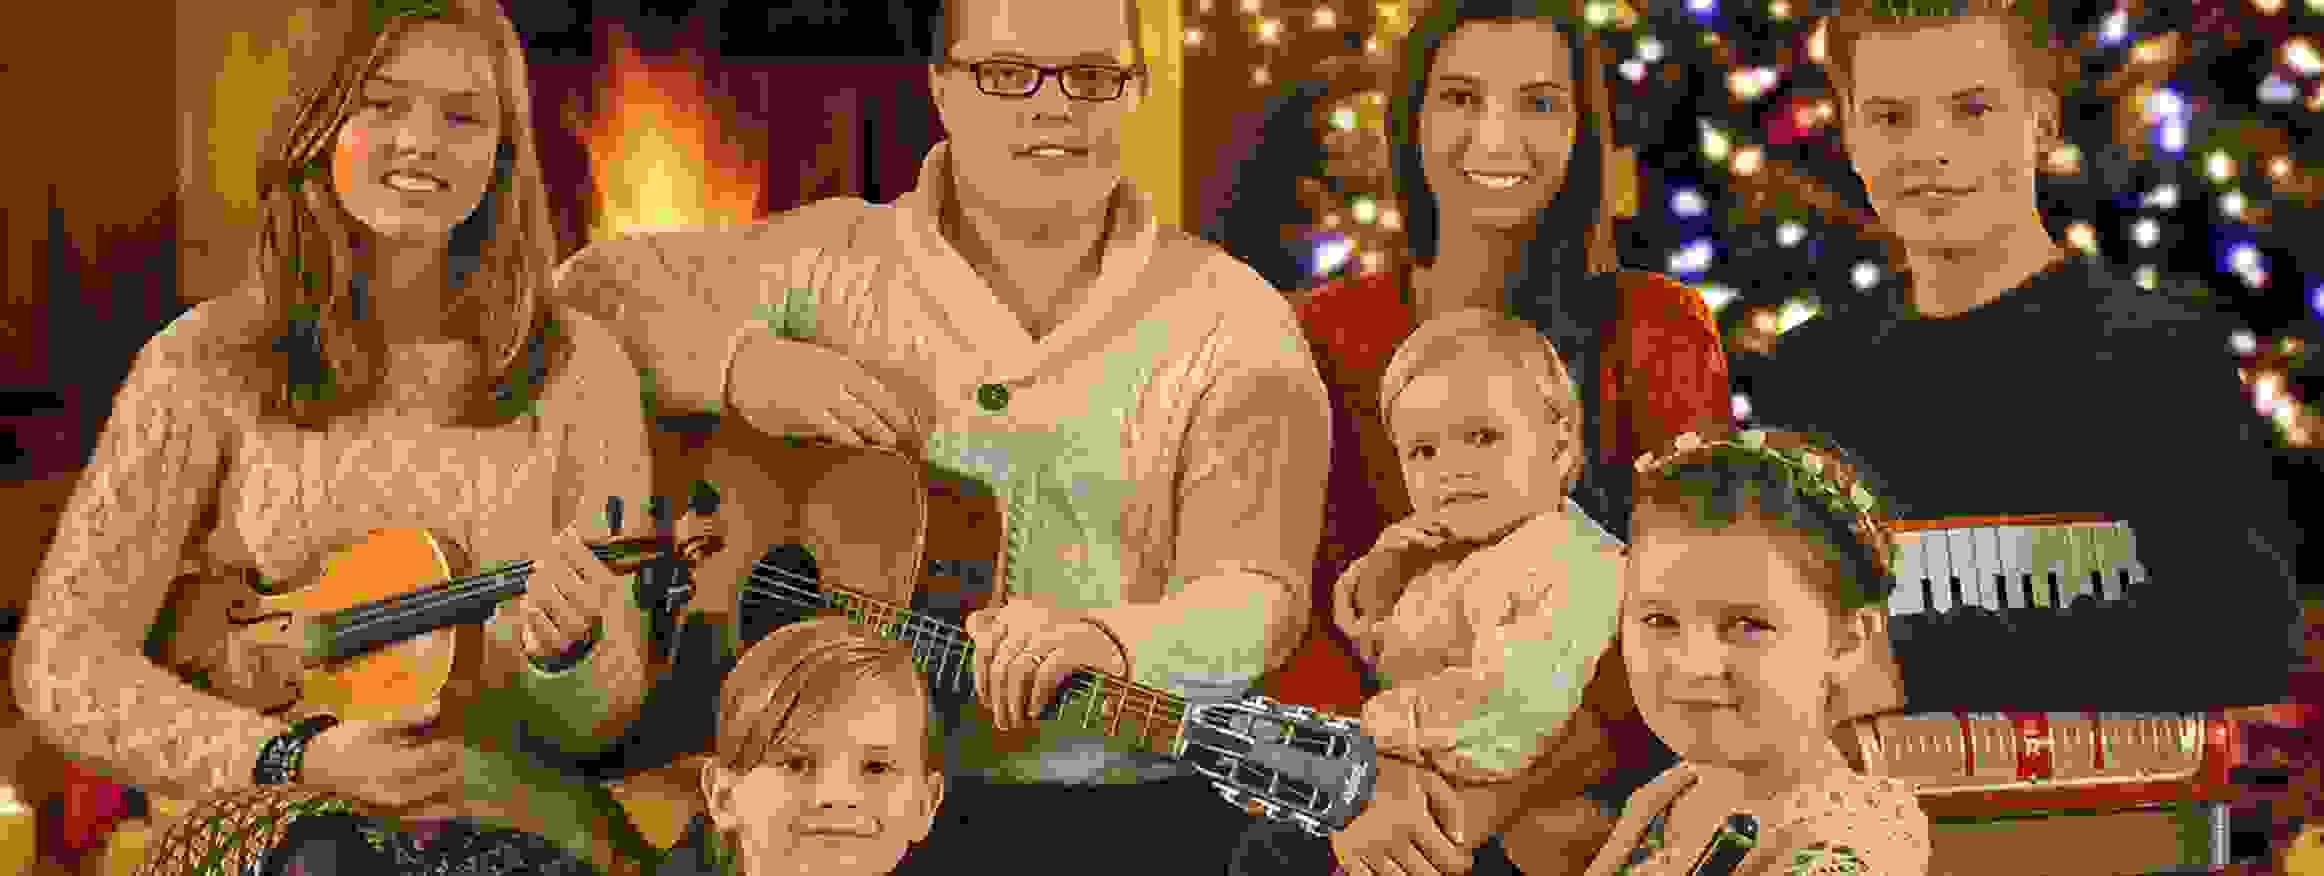 Angelo Kelly And Family Foto 01 Credit Angelo Kelly